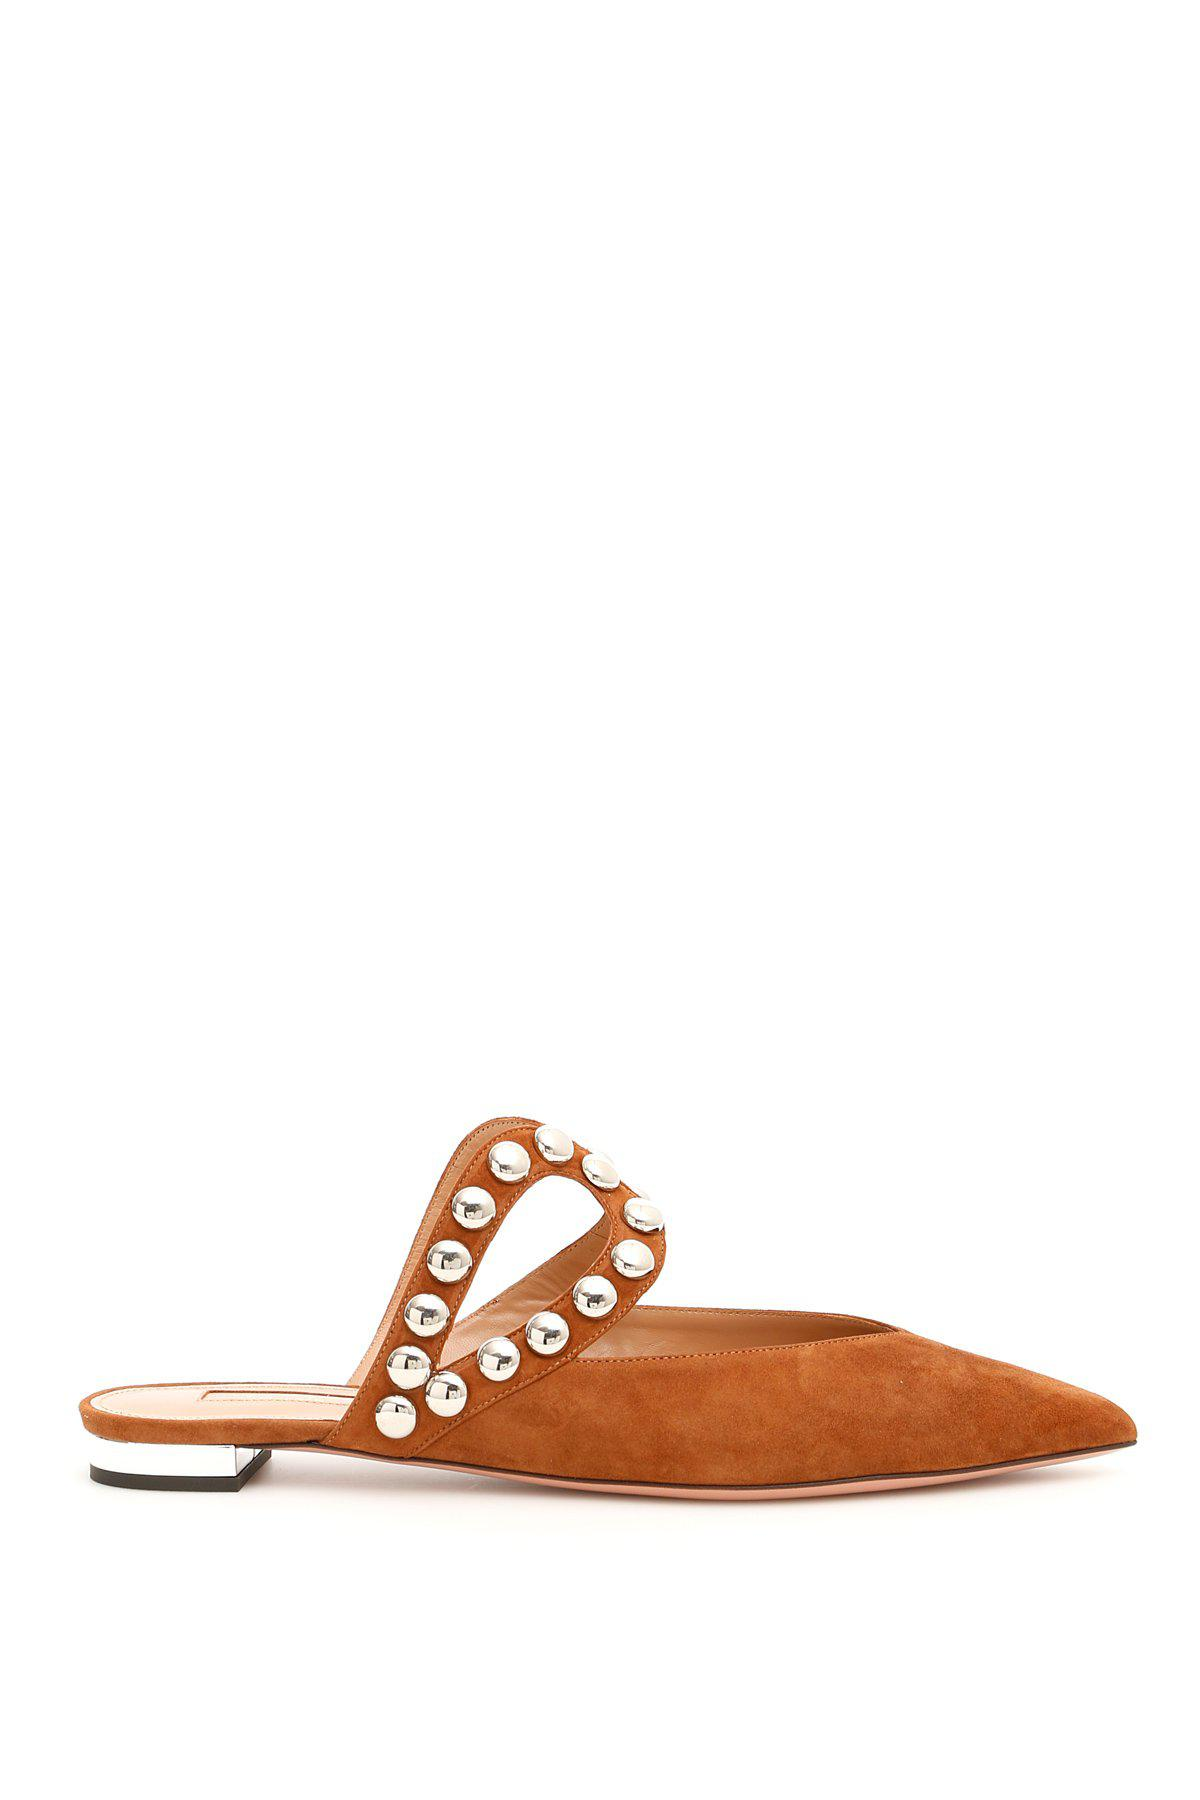 87390266109 Lyst - Aquazzura Dj Studded Mules in Orange